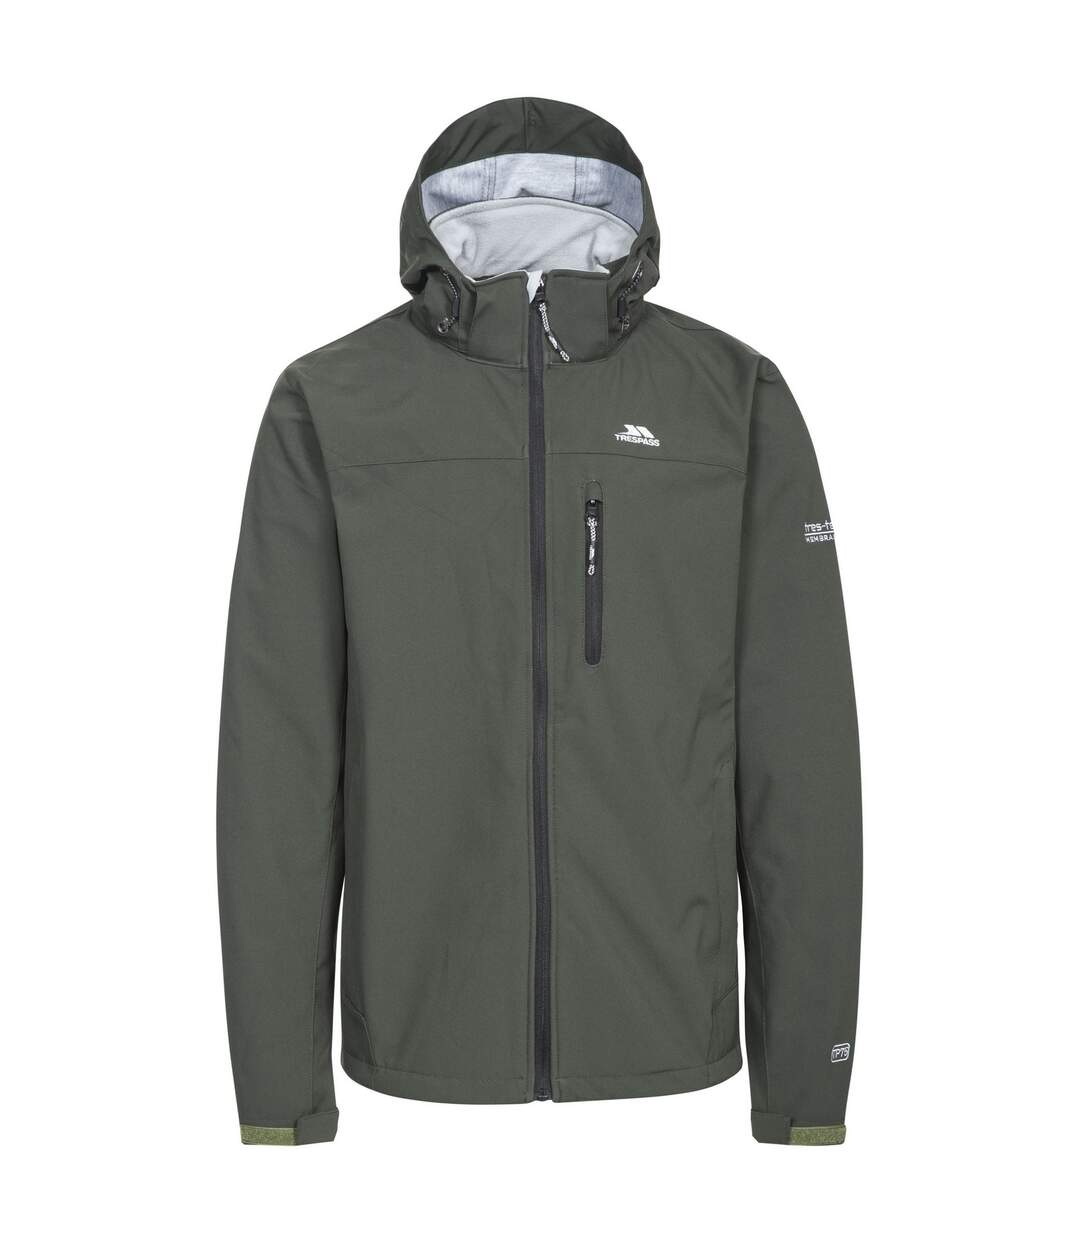 Trespass Mens Stanford Softshell Jacket (Olive) - UTTP2843